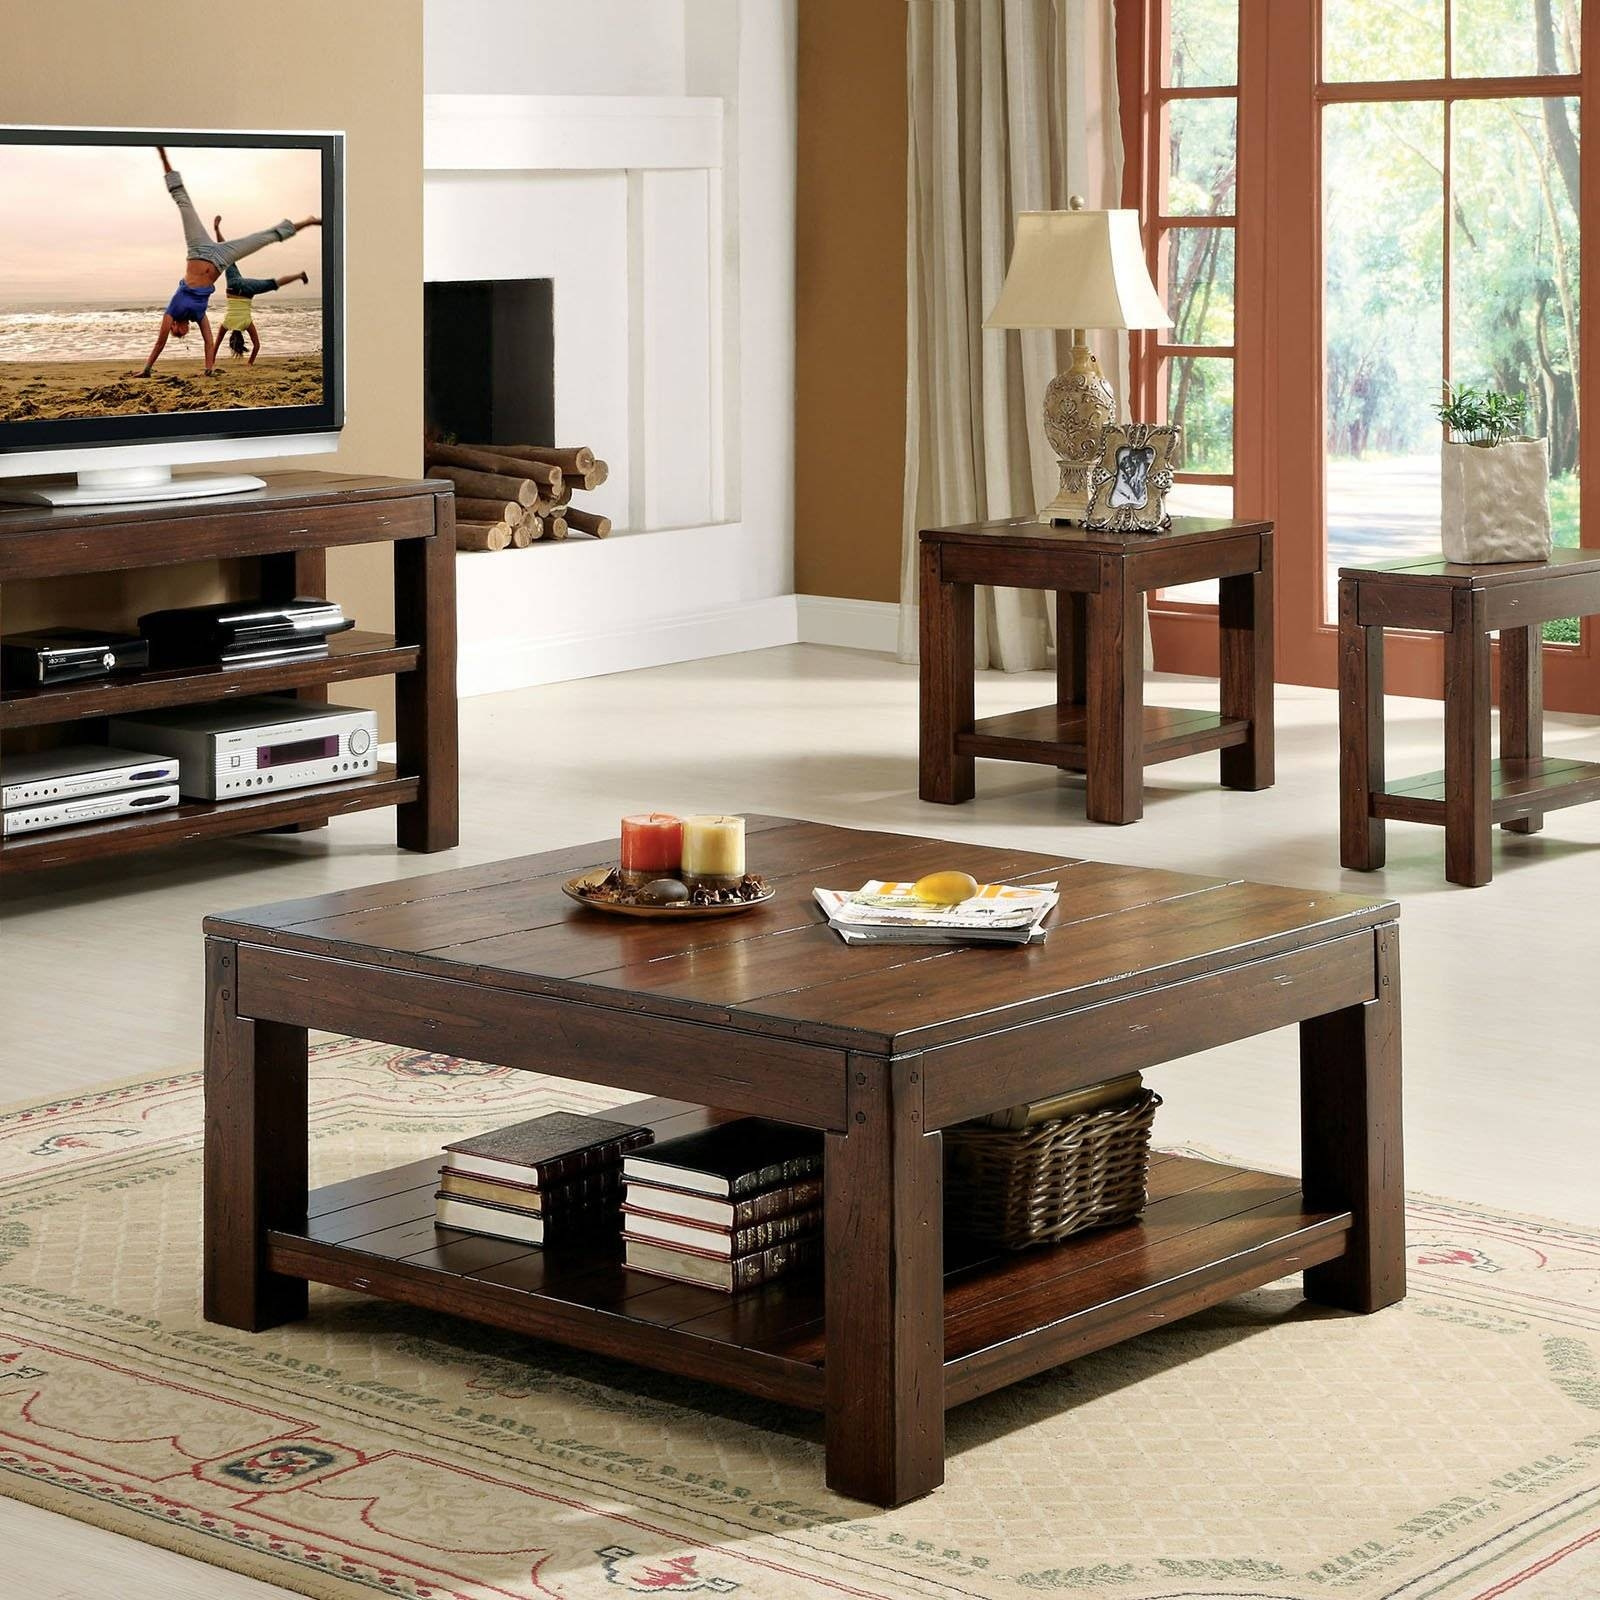 Wooden Coffee Table And Tv Stand - Coffee Addicts throughout Rustic Coffee Tables And Tv Stands (Image 30 of 30)